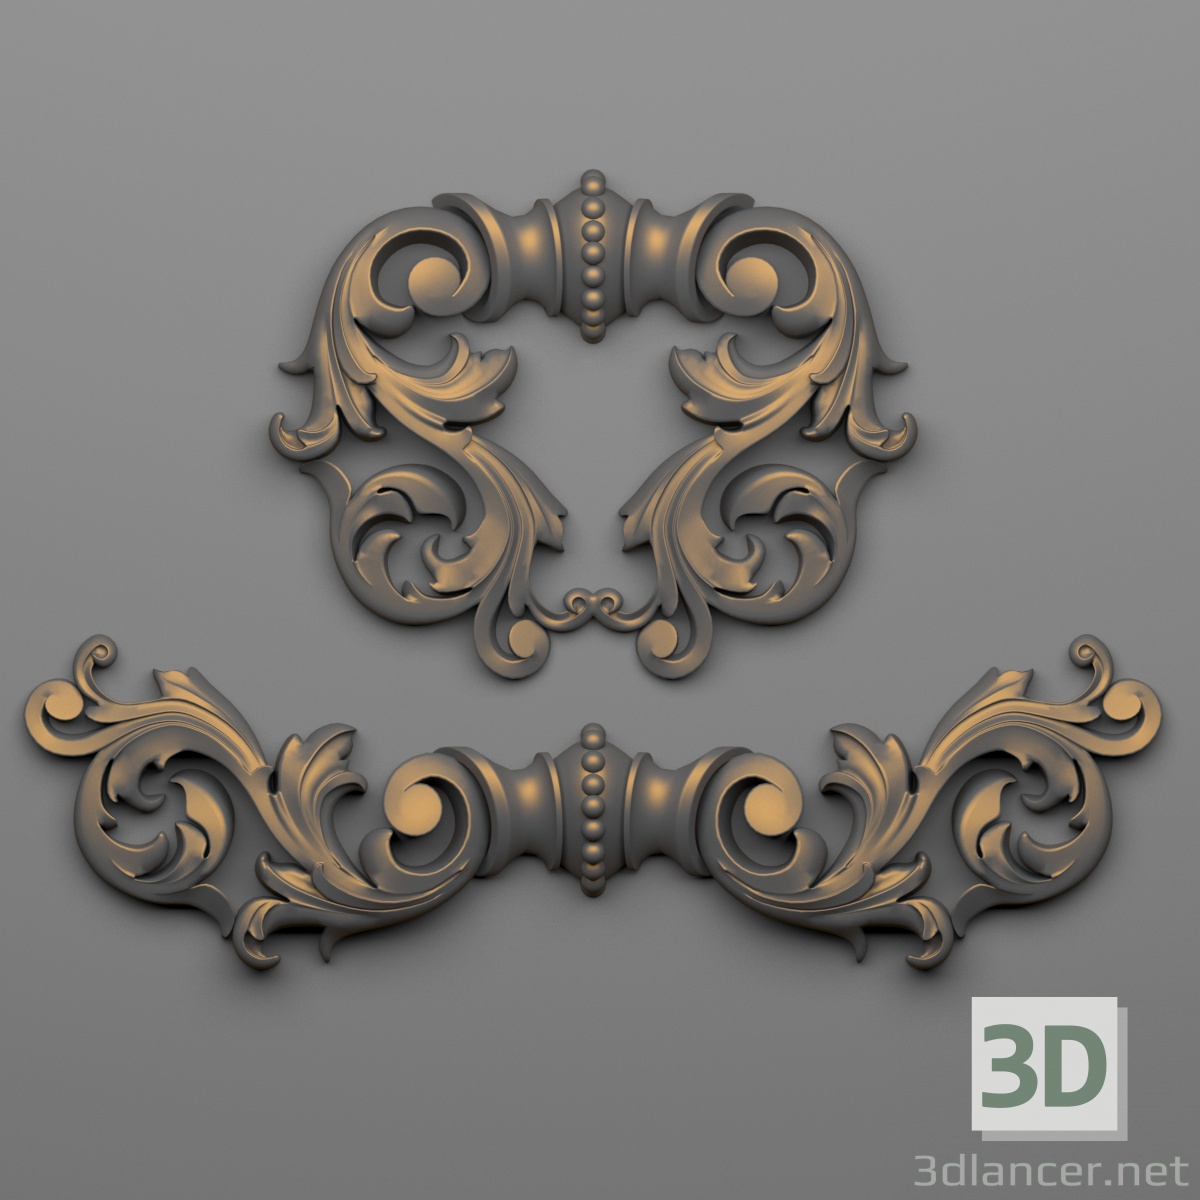 3d Decor 67 model buy - render